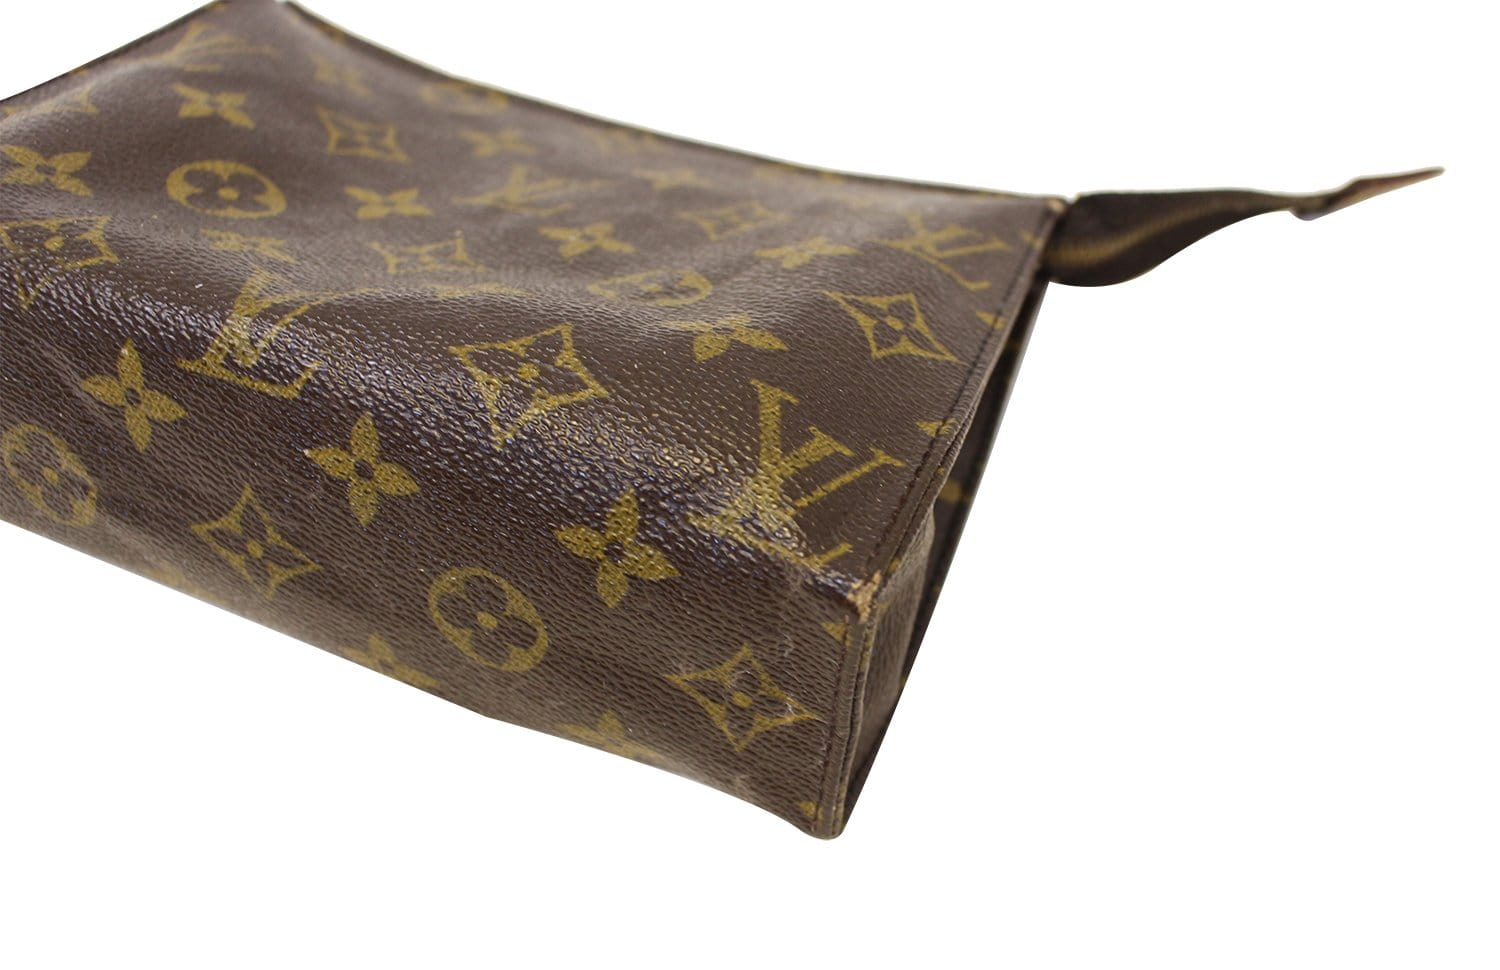 dc0f10608bb6 LOUIS VUITTON Monogram Canvas Toiletry Pouch 19 Cosmetics Pouch